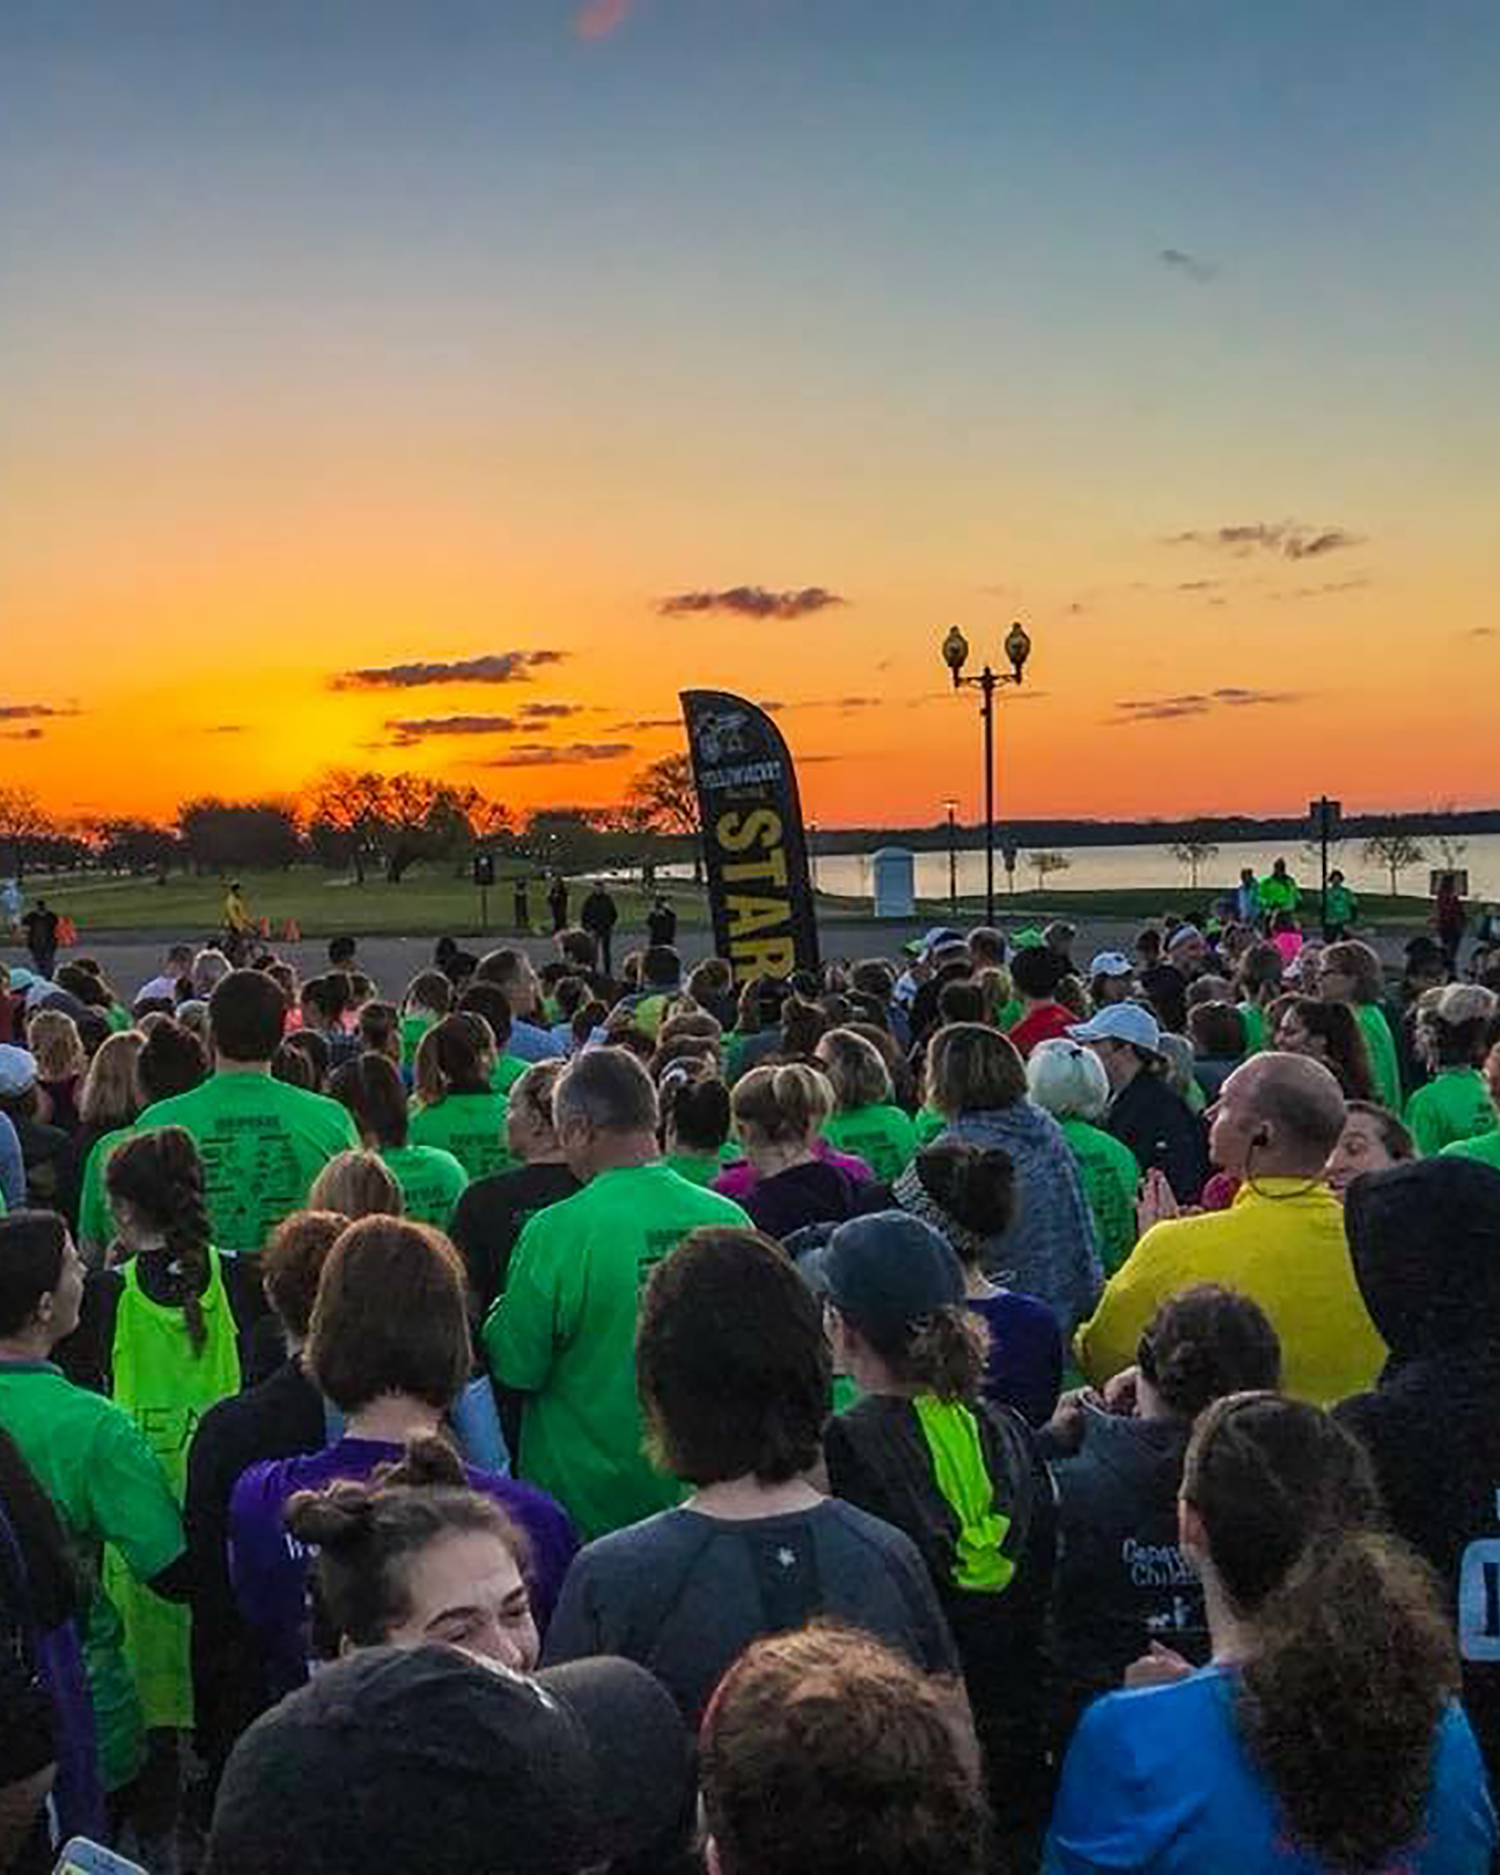 Middle Finger 5K - Have you been impacted by cancer? Do you want to give cancer the finger? Every sunrise gives us one more day of hope. Join us for a unique start to your day and help us help those in treatment for cancer Thrive. Open to all fitness levels.Come Run With Us!